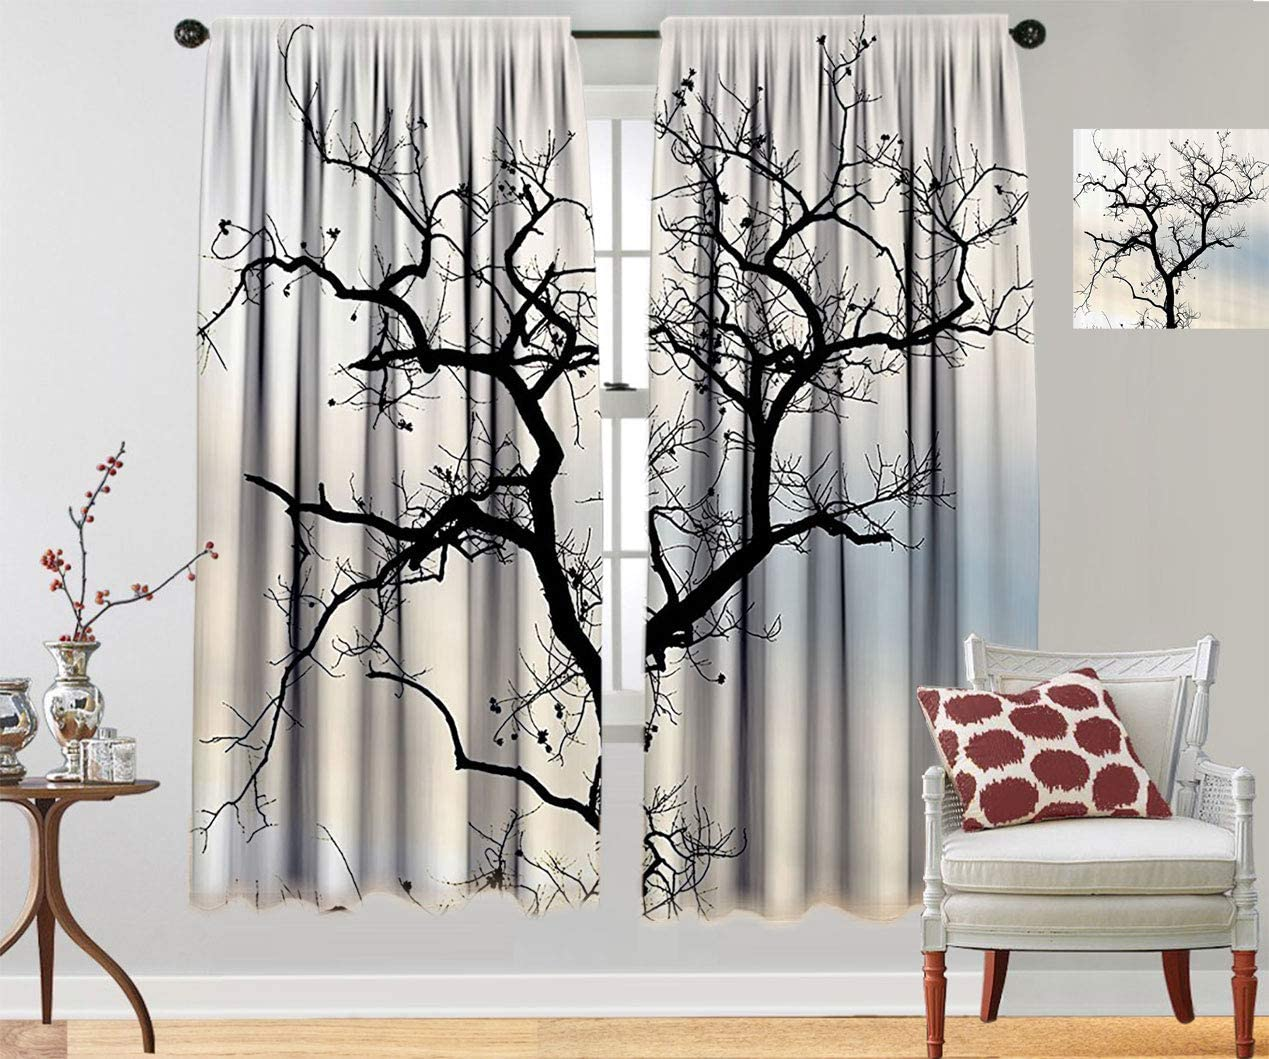 Woodsy Decor Personalized Curtains A Black in Manufacturer direct delivery Tree lowest price Lonely Fall